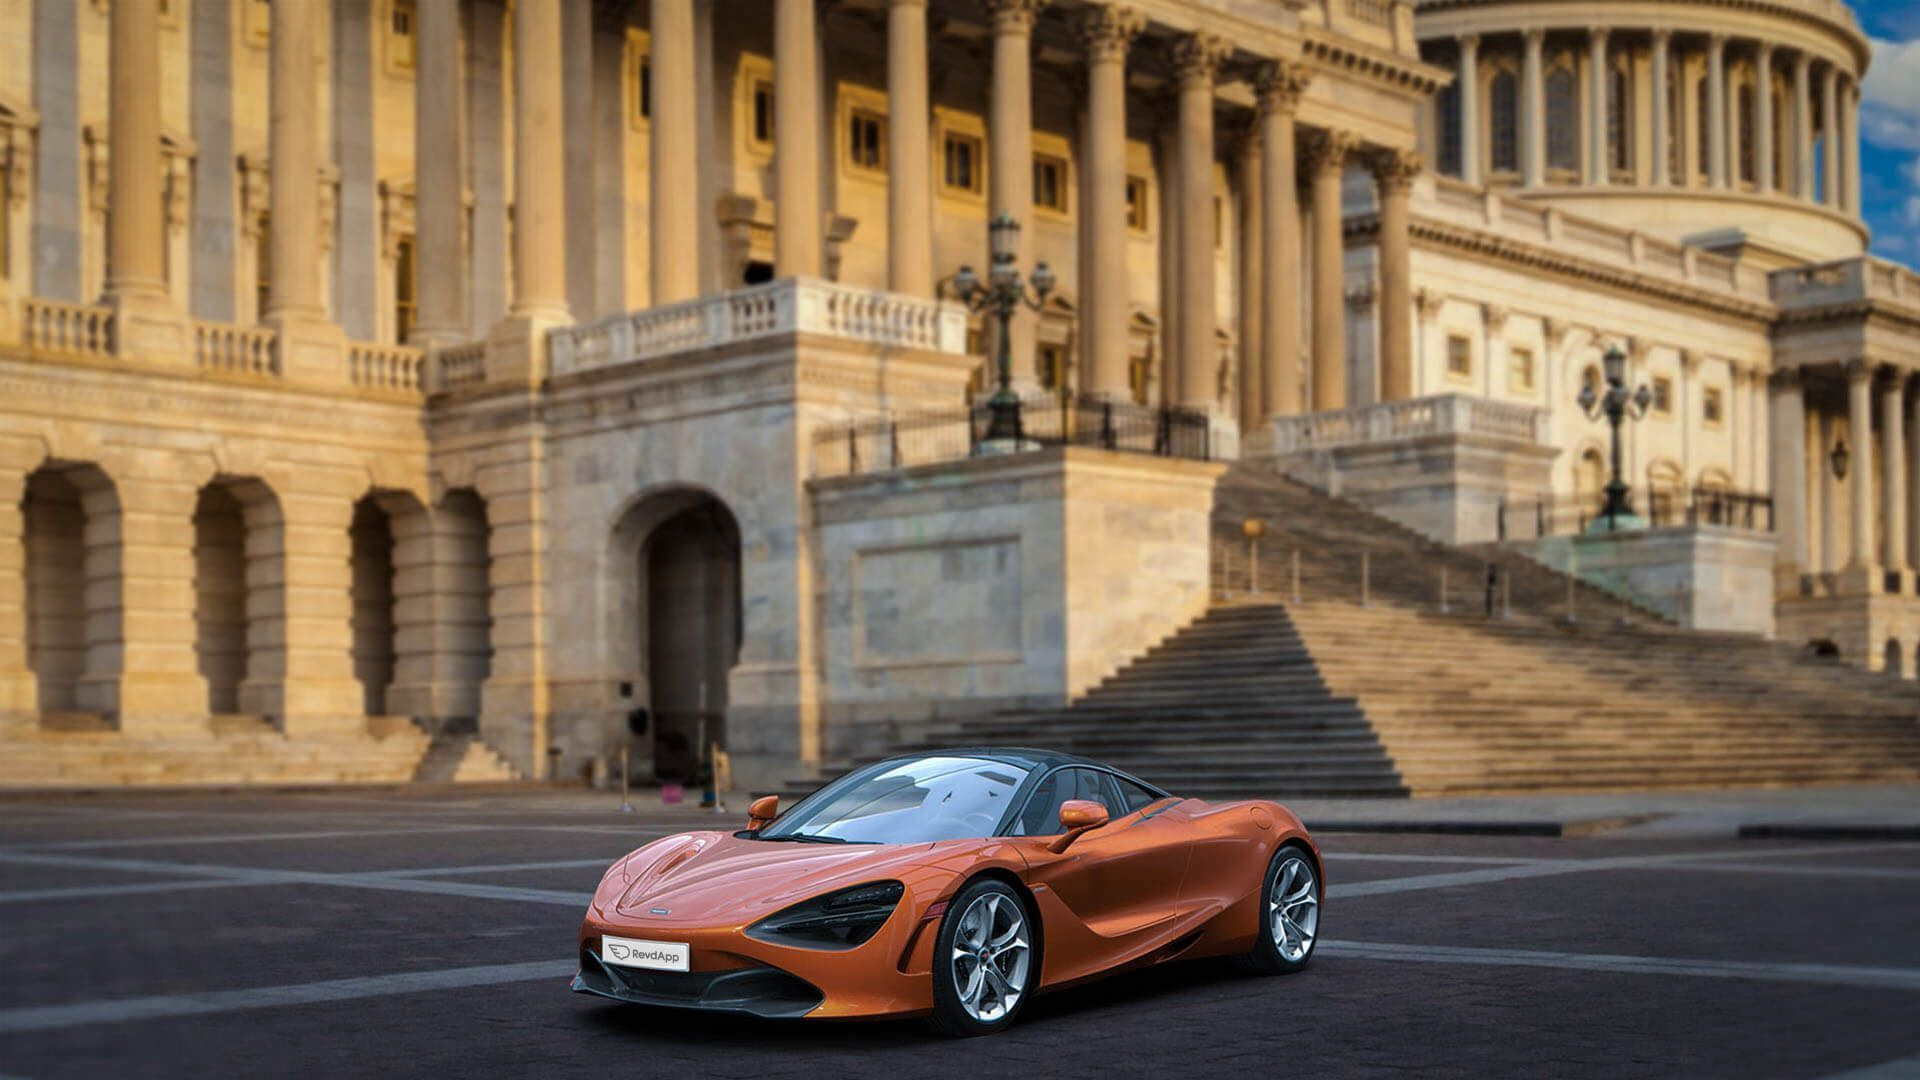 He Mclaren 720s Is Pound For Pound The Agilest Supercar On The Market Today It S The First Supercar To Blur The Line Betwe Mclaren Super Sport Cars Dream Cars